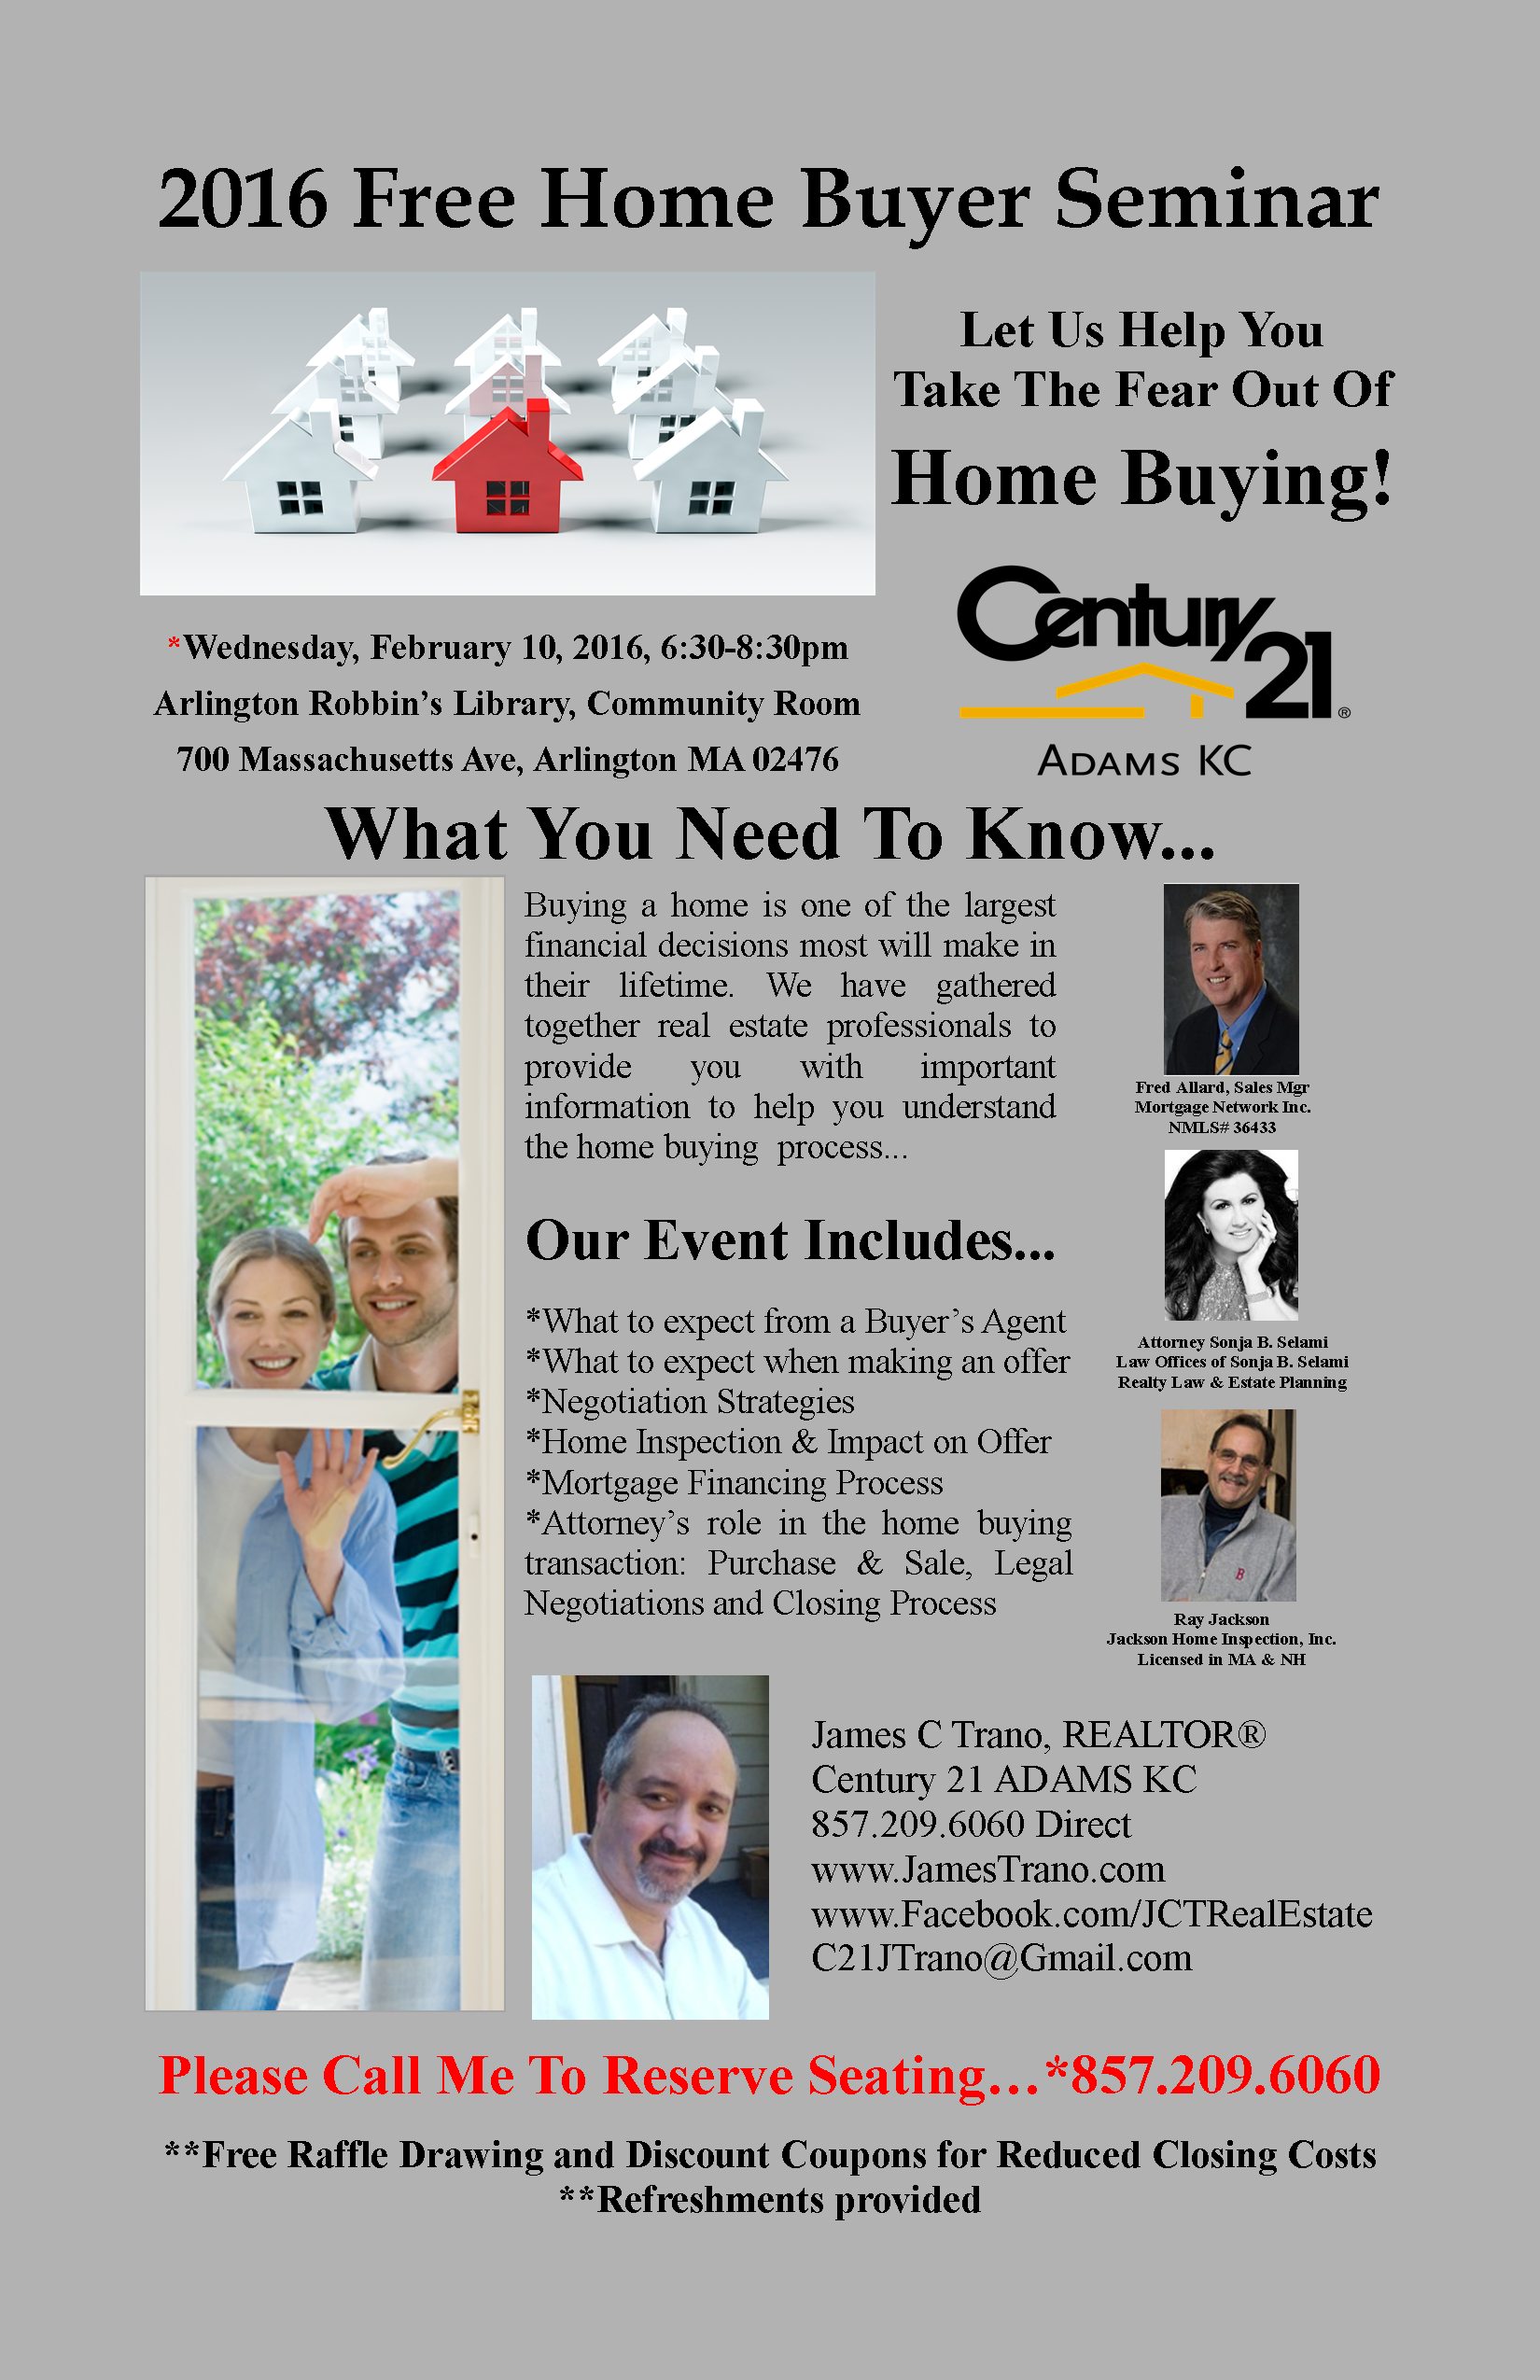 JT 2016 Home Buyer Seminar - 11by17 Poster Revised2